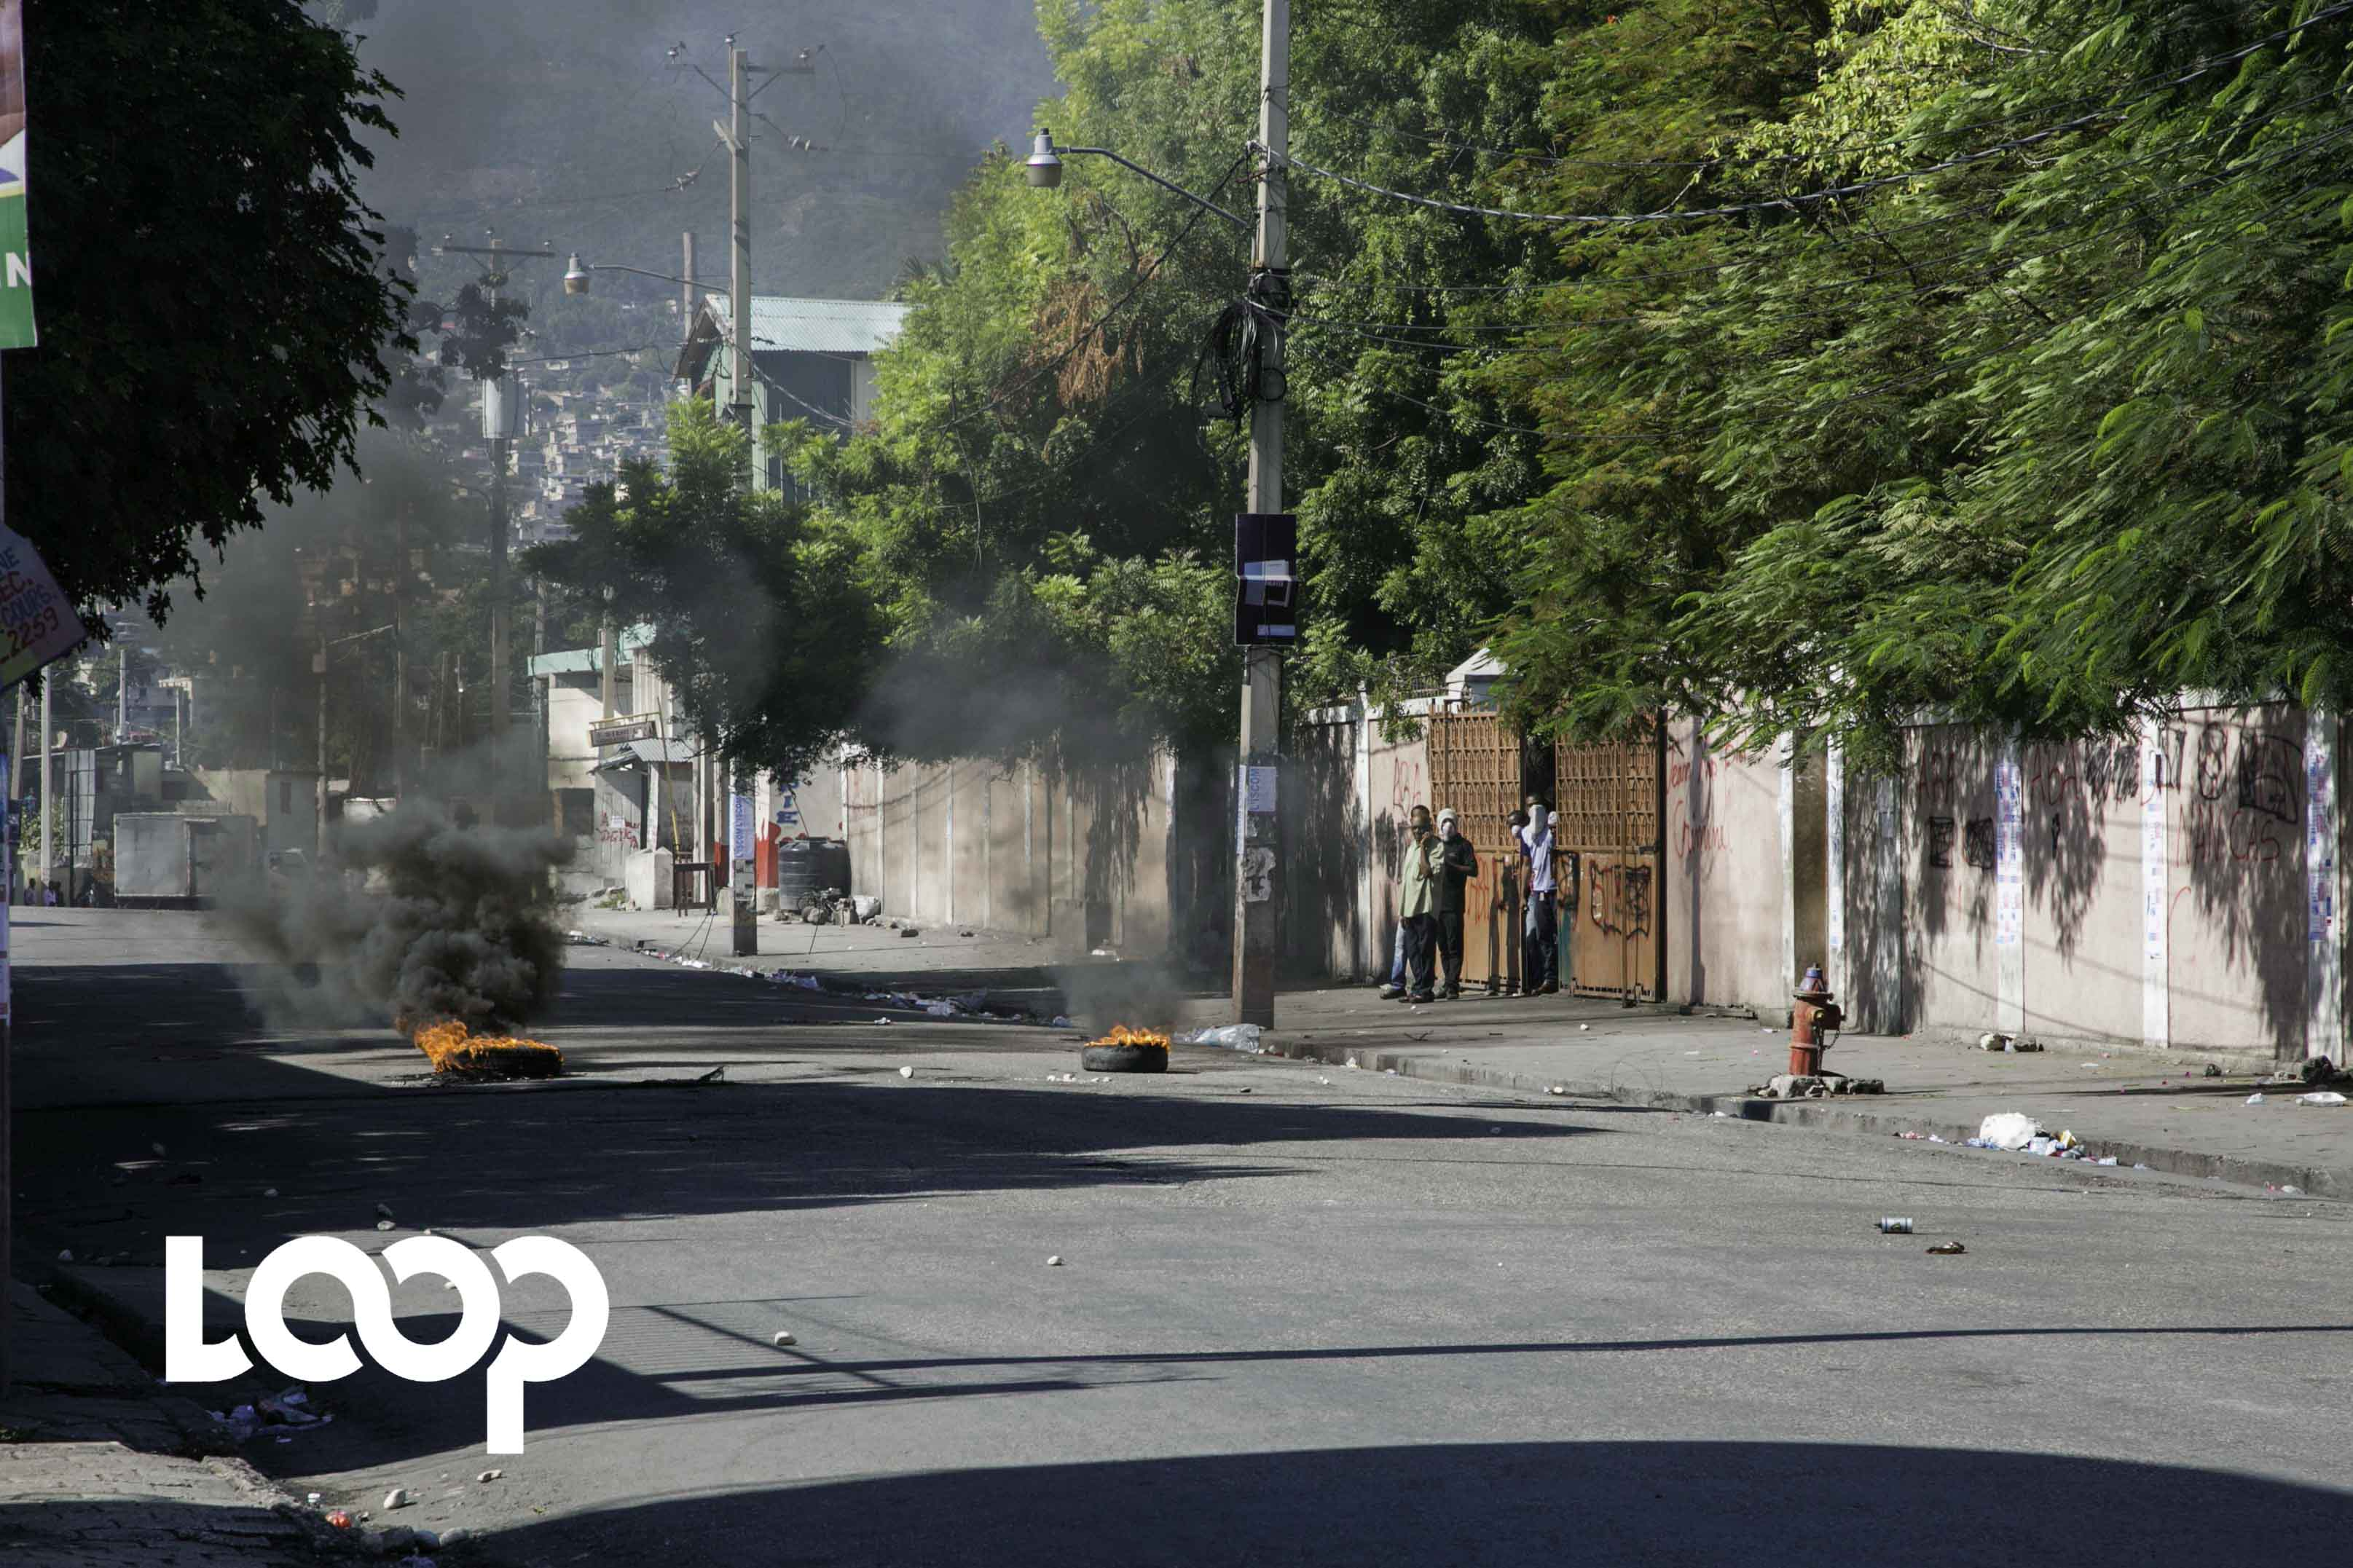 En photos, la situation à Port-au-Prince ce lundi 18 septembre- Added COMMENTARY By Haitian-Truth